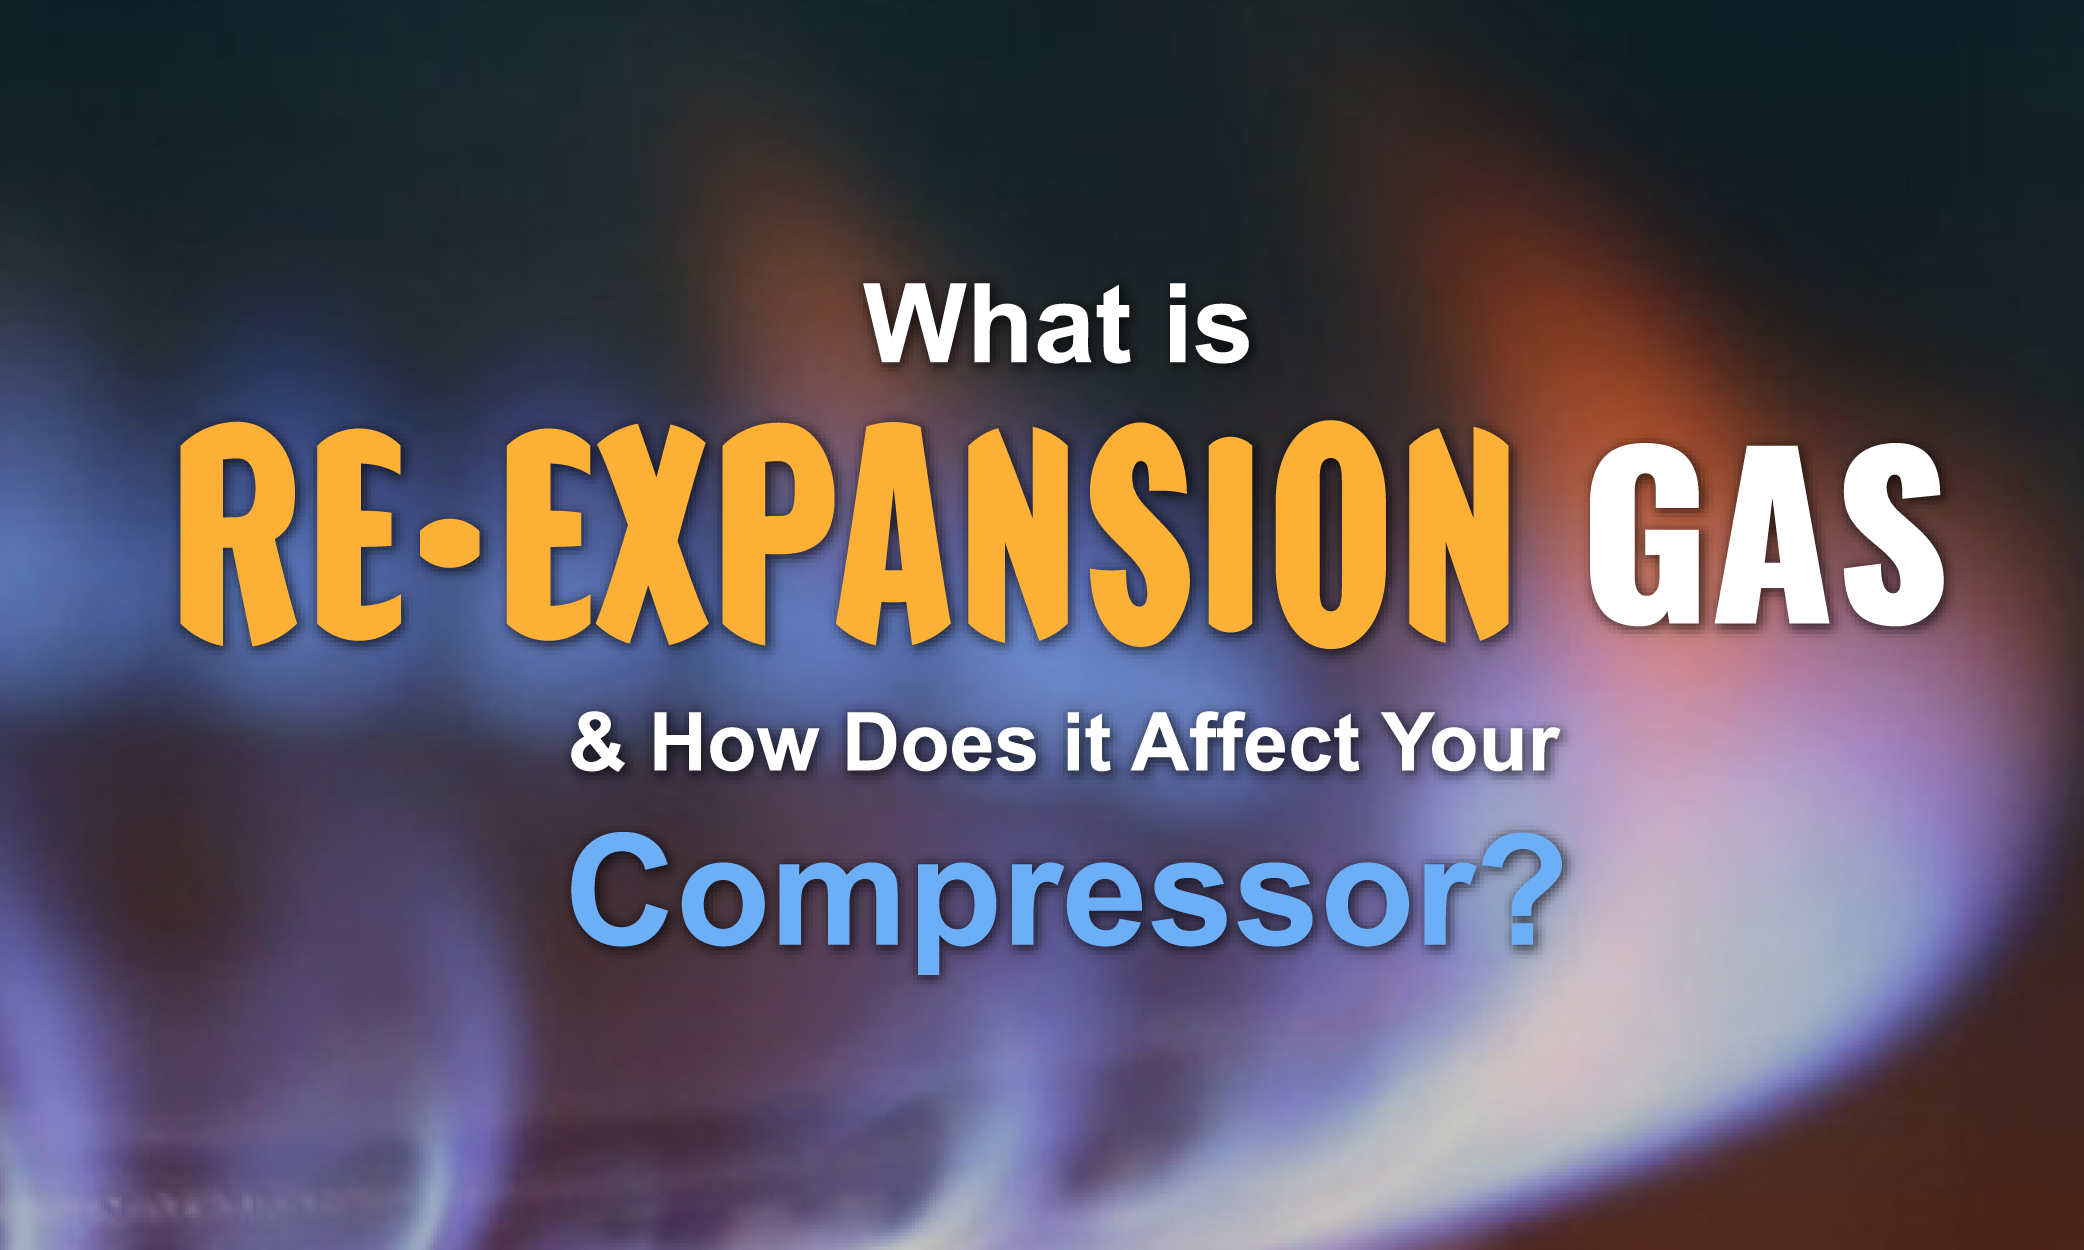 ReExpansionGas-bloggraphic-01